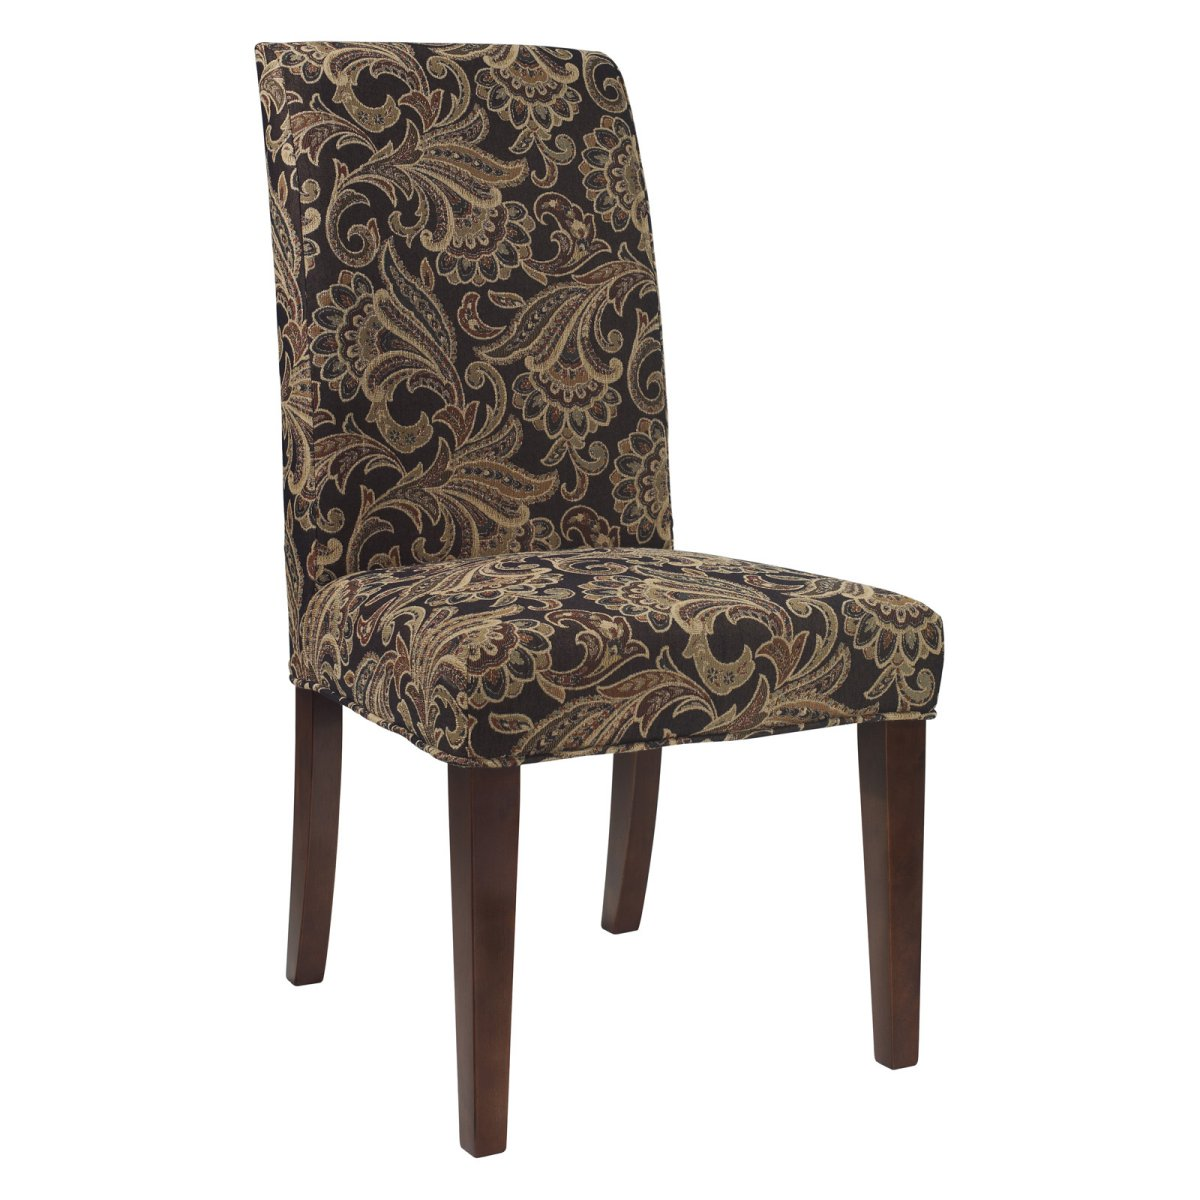 Autumn Graphics Picture: Autumn Dining Chair Cover